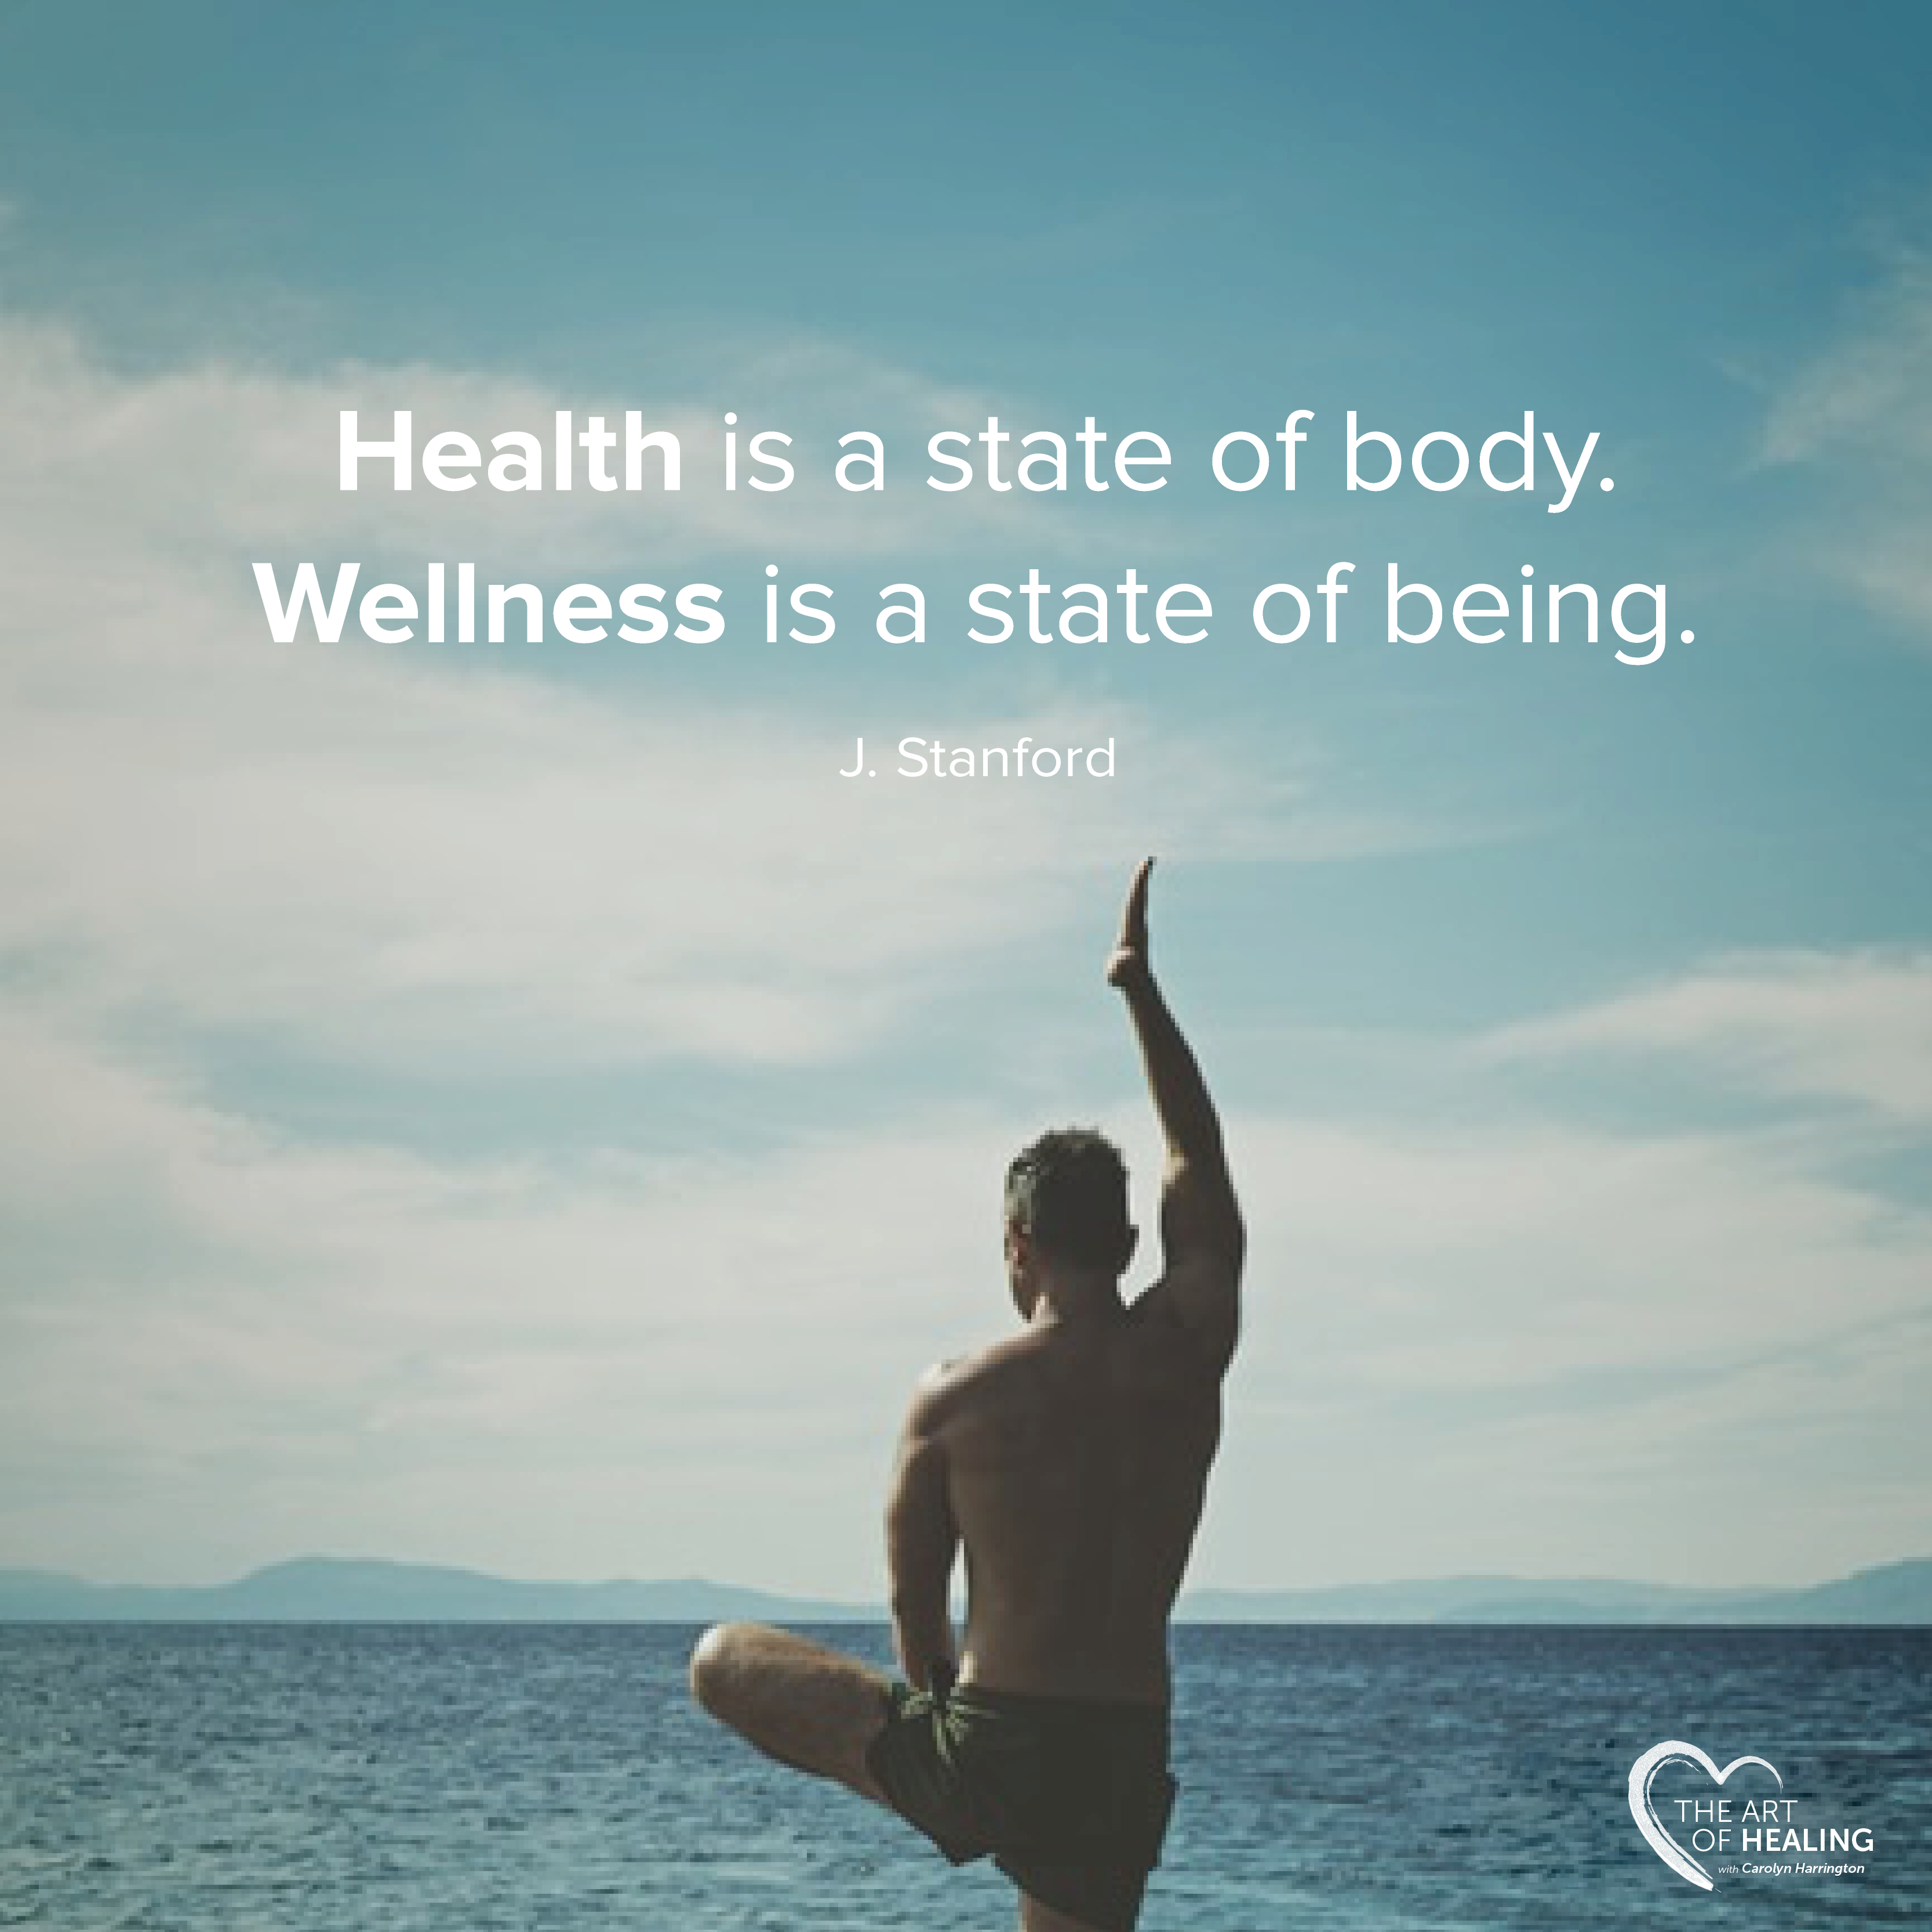 #charlottewinslowcom #wellness #journey #fitness #healing #inspire #quotes #ebooks #health #guide #y...